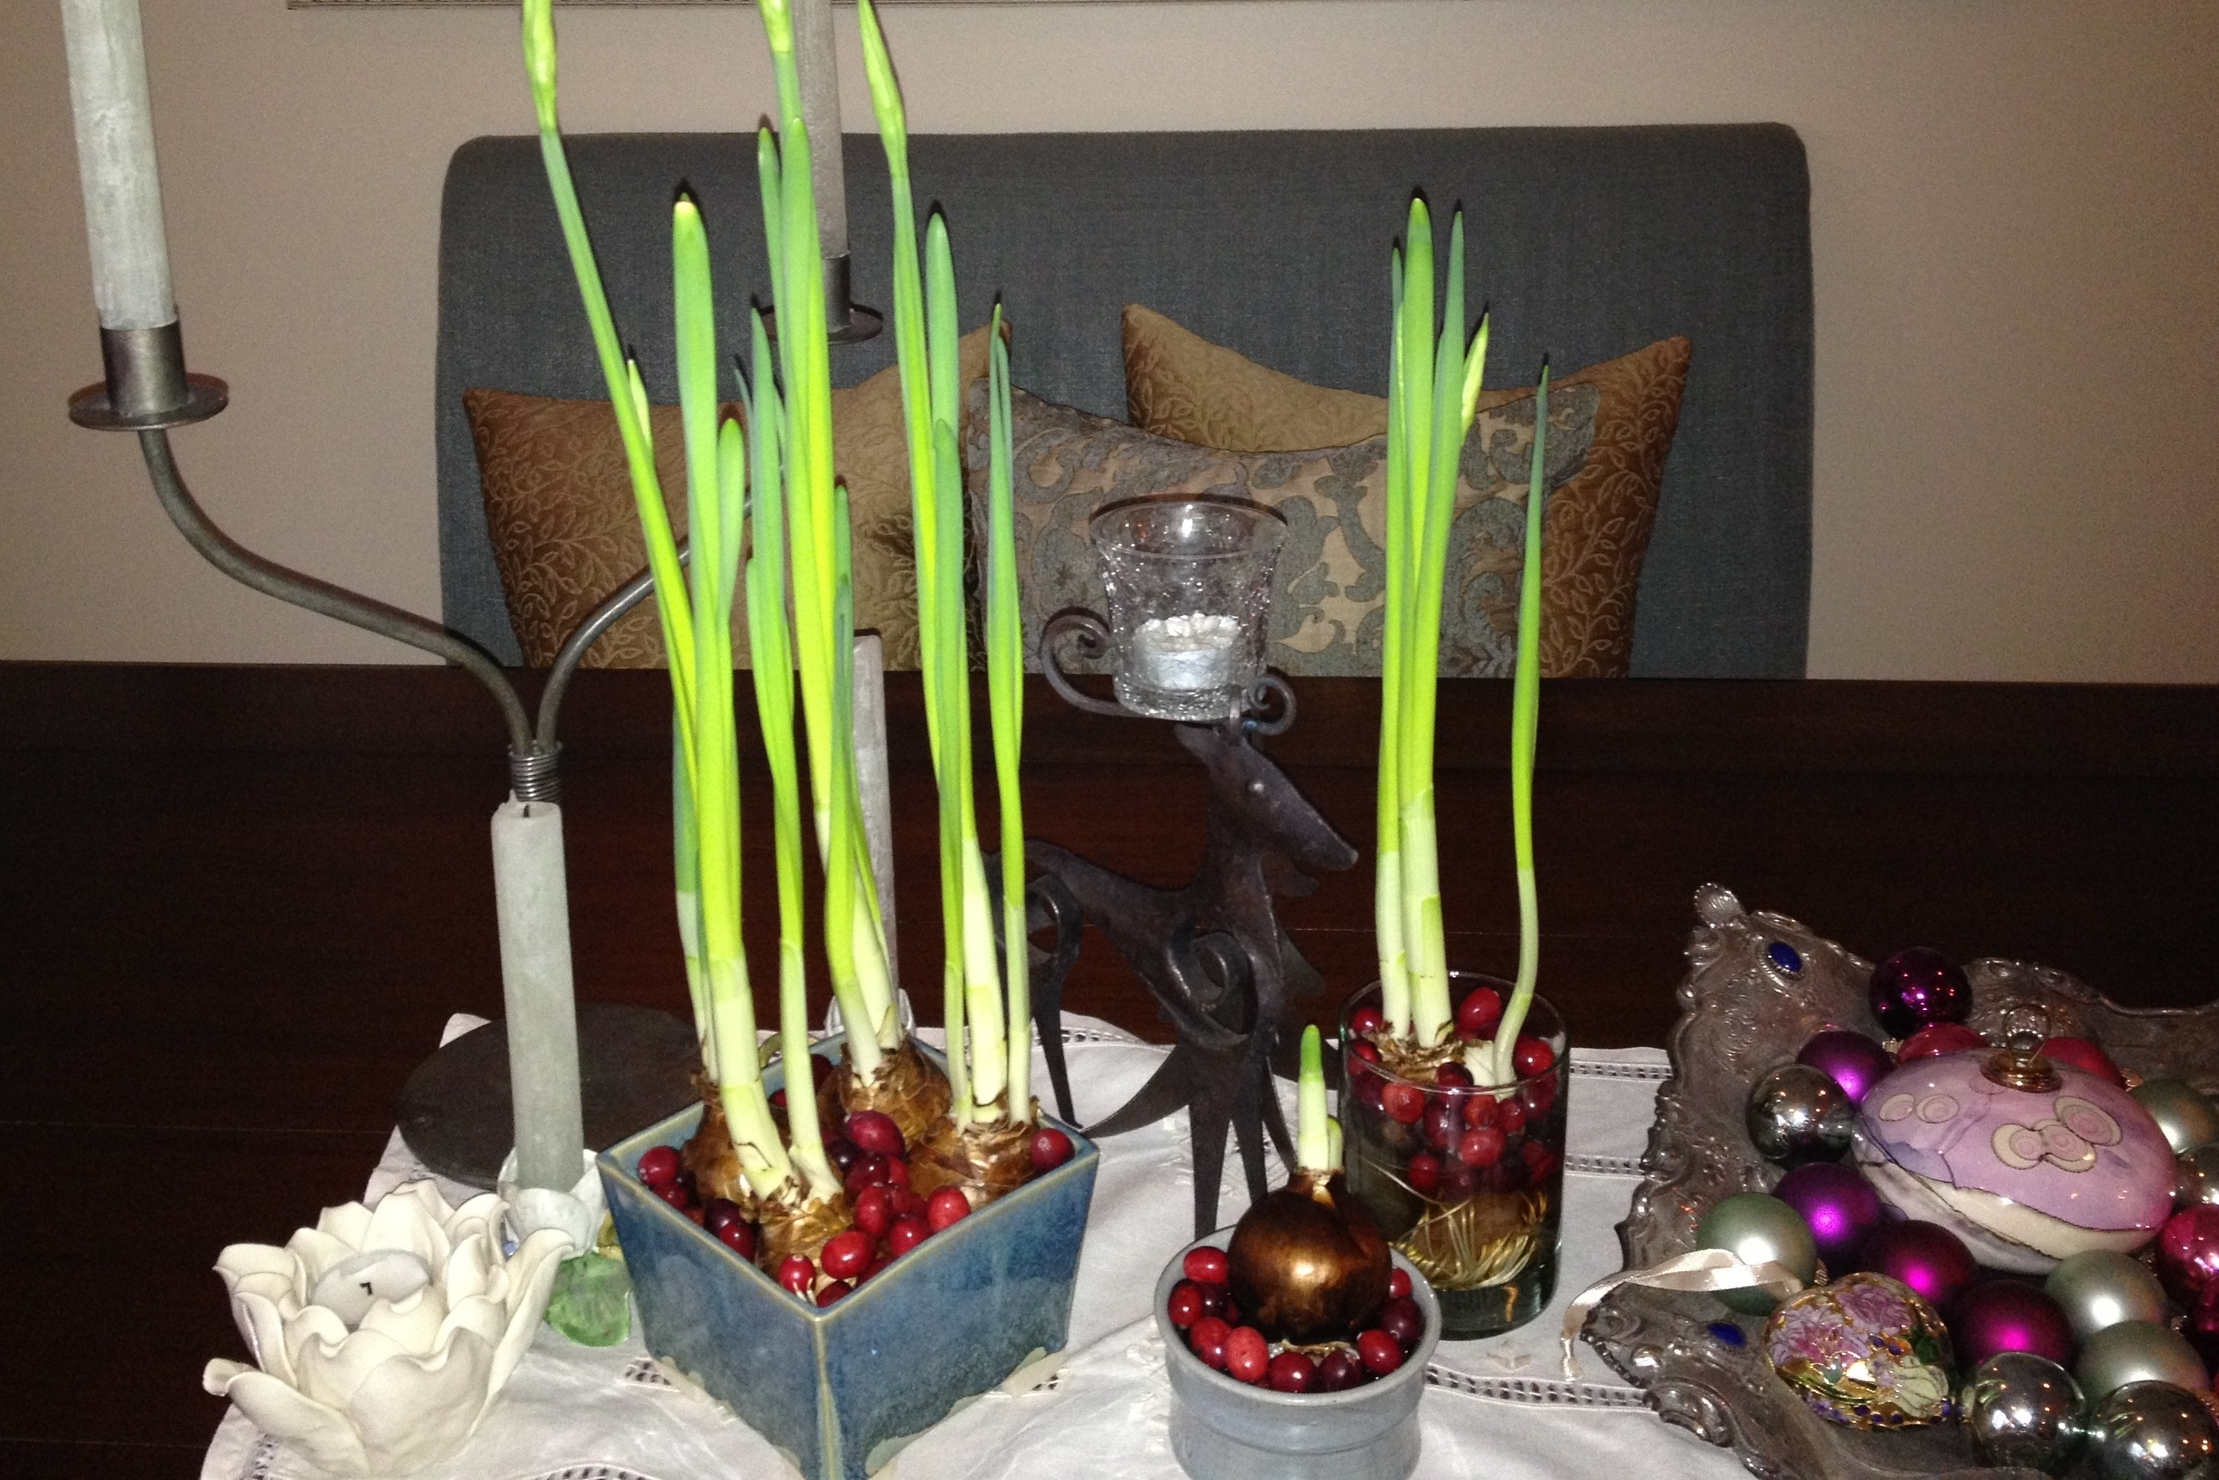 Paperwhites all ready to gift...they will be beautiful when they bloom!